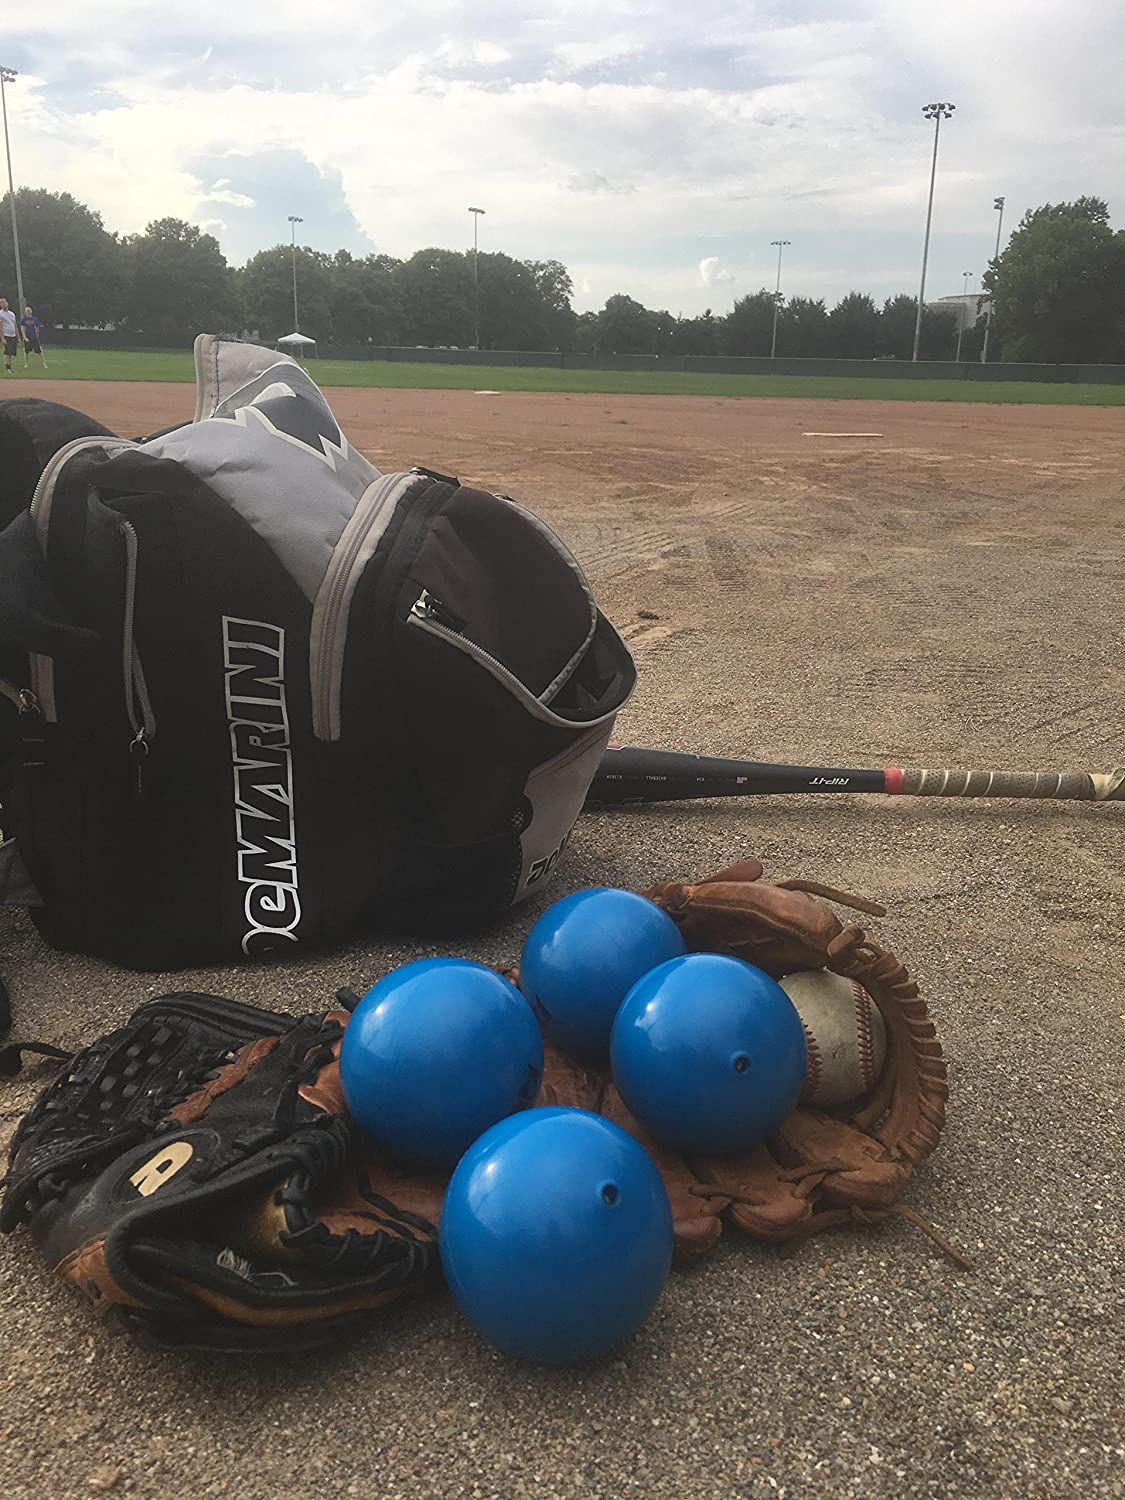 and Weighted Ball Exercise by Probo Sports Pitching Training Softball and Baseball Training Equipment for Batting Practice Power-Thru Weighted Baseballs 6 Pack